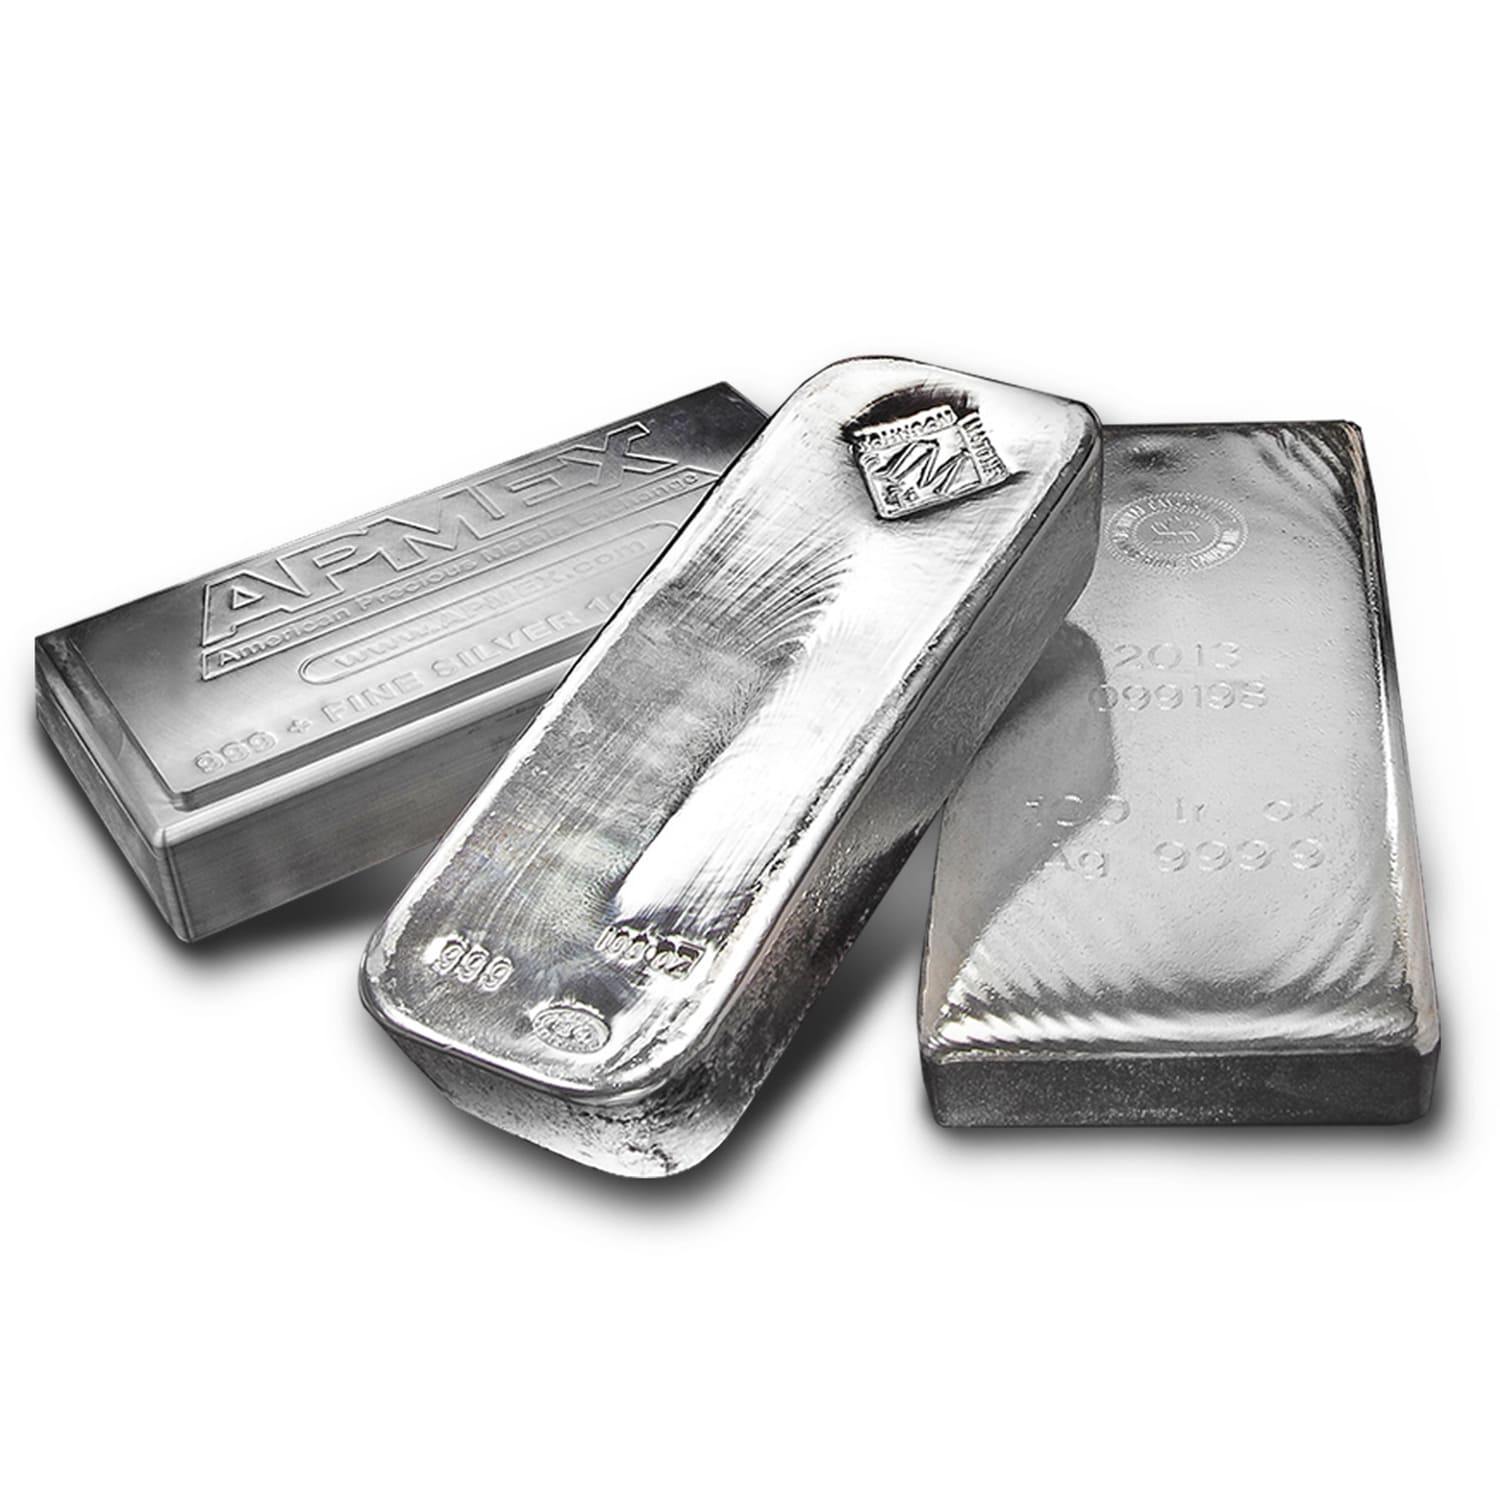 96.90 oz Silver Bars - Secondary Market